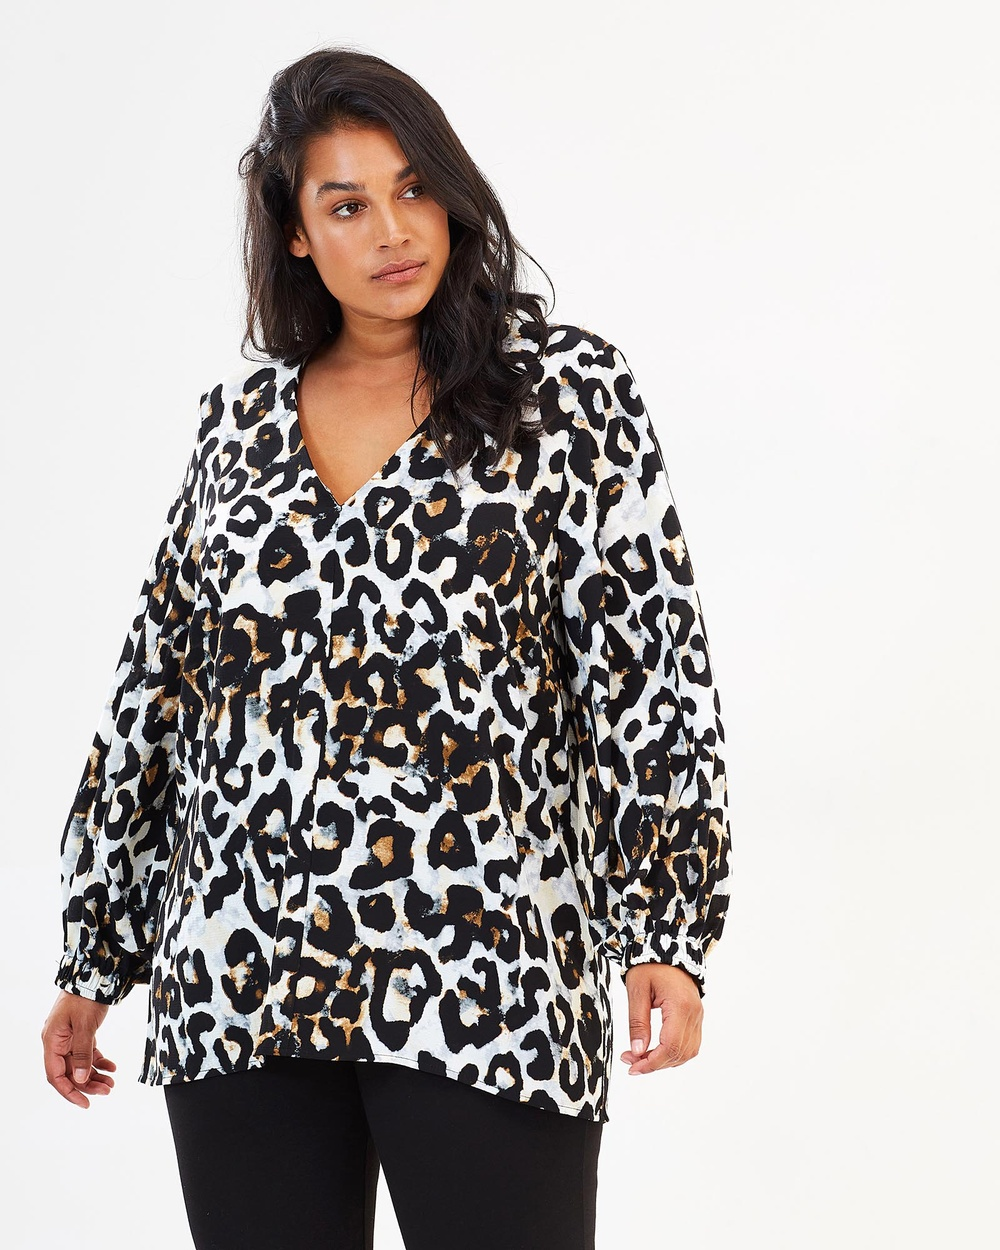 Harlow Don't Stop Me Now Blouson Top Tops Leopard Don't Stop Me Now Blouson Top